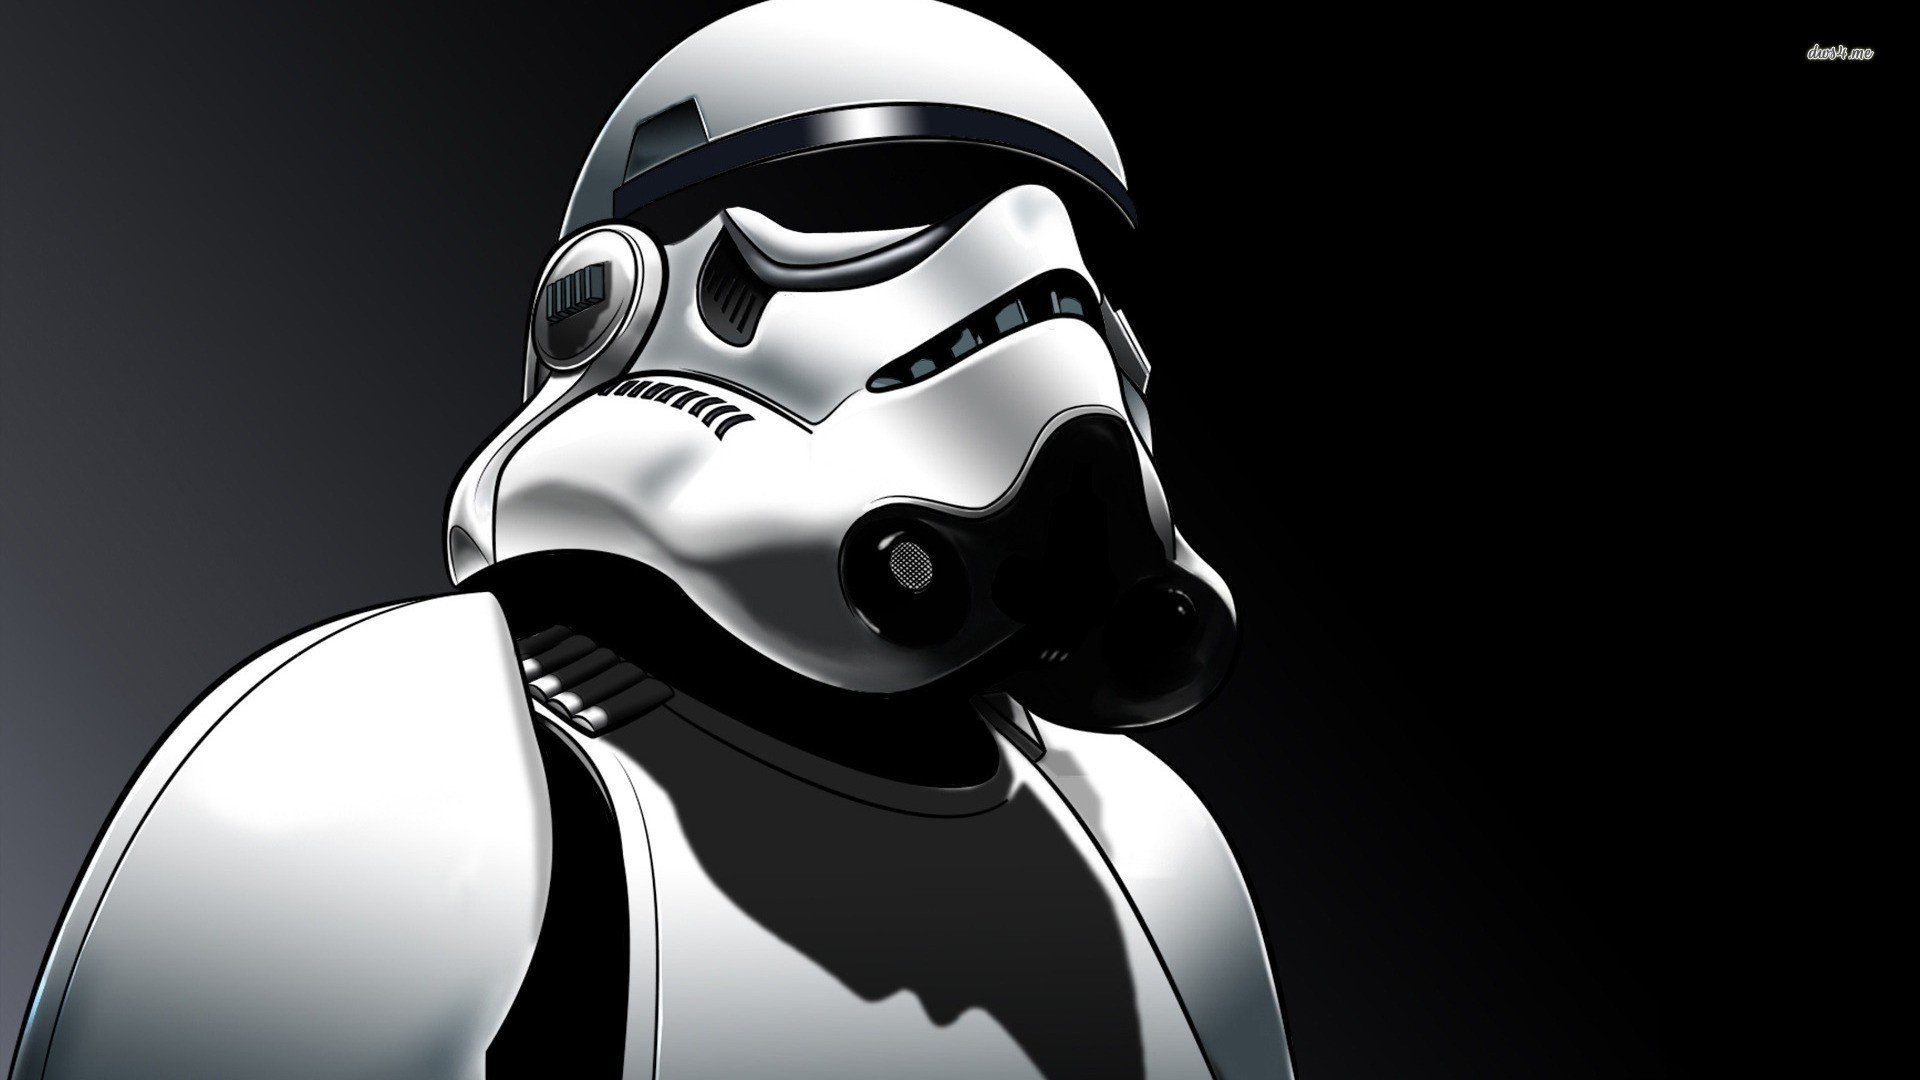 Free Download Spiderman Stormtrooper Wallpaper Wallpaper Wide Hd